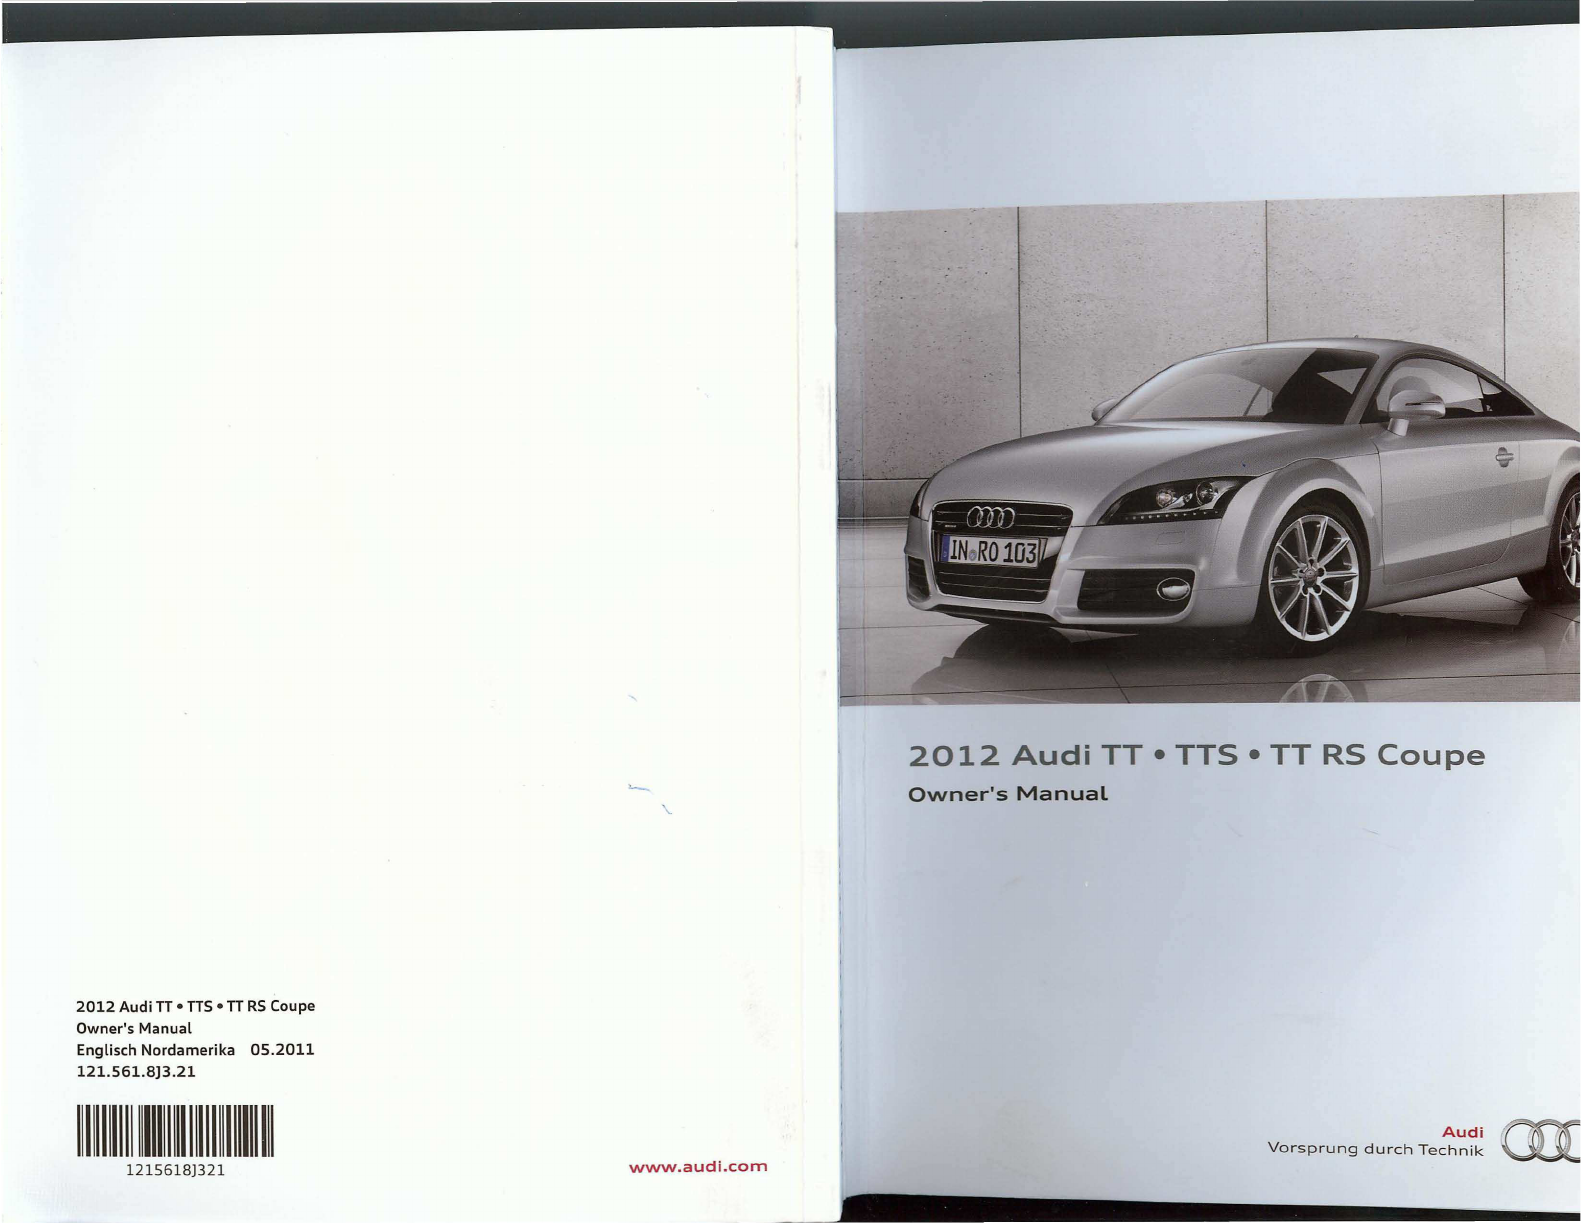 audi tt 2012 owners manual pdf rh manuals co 2002 Audi TT Owner's Manual 2015 Audi TT Manual Transmission